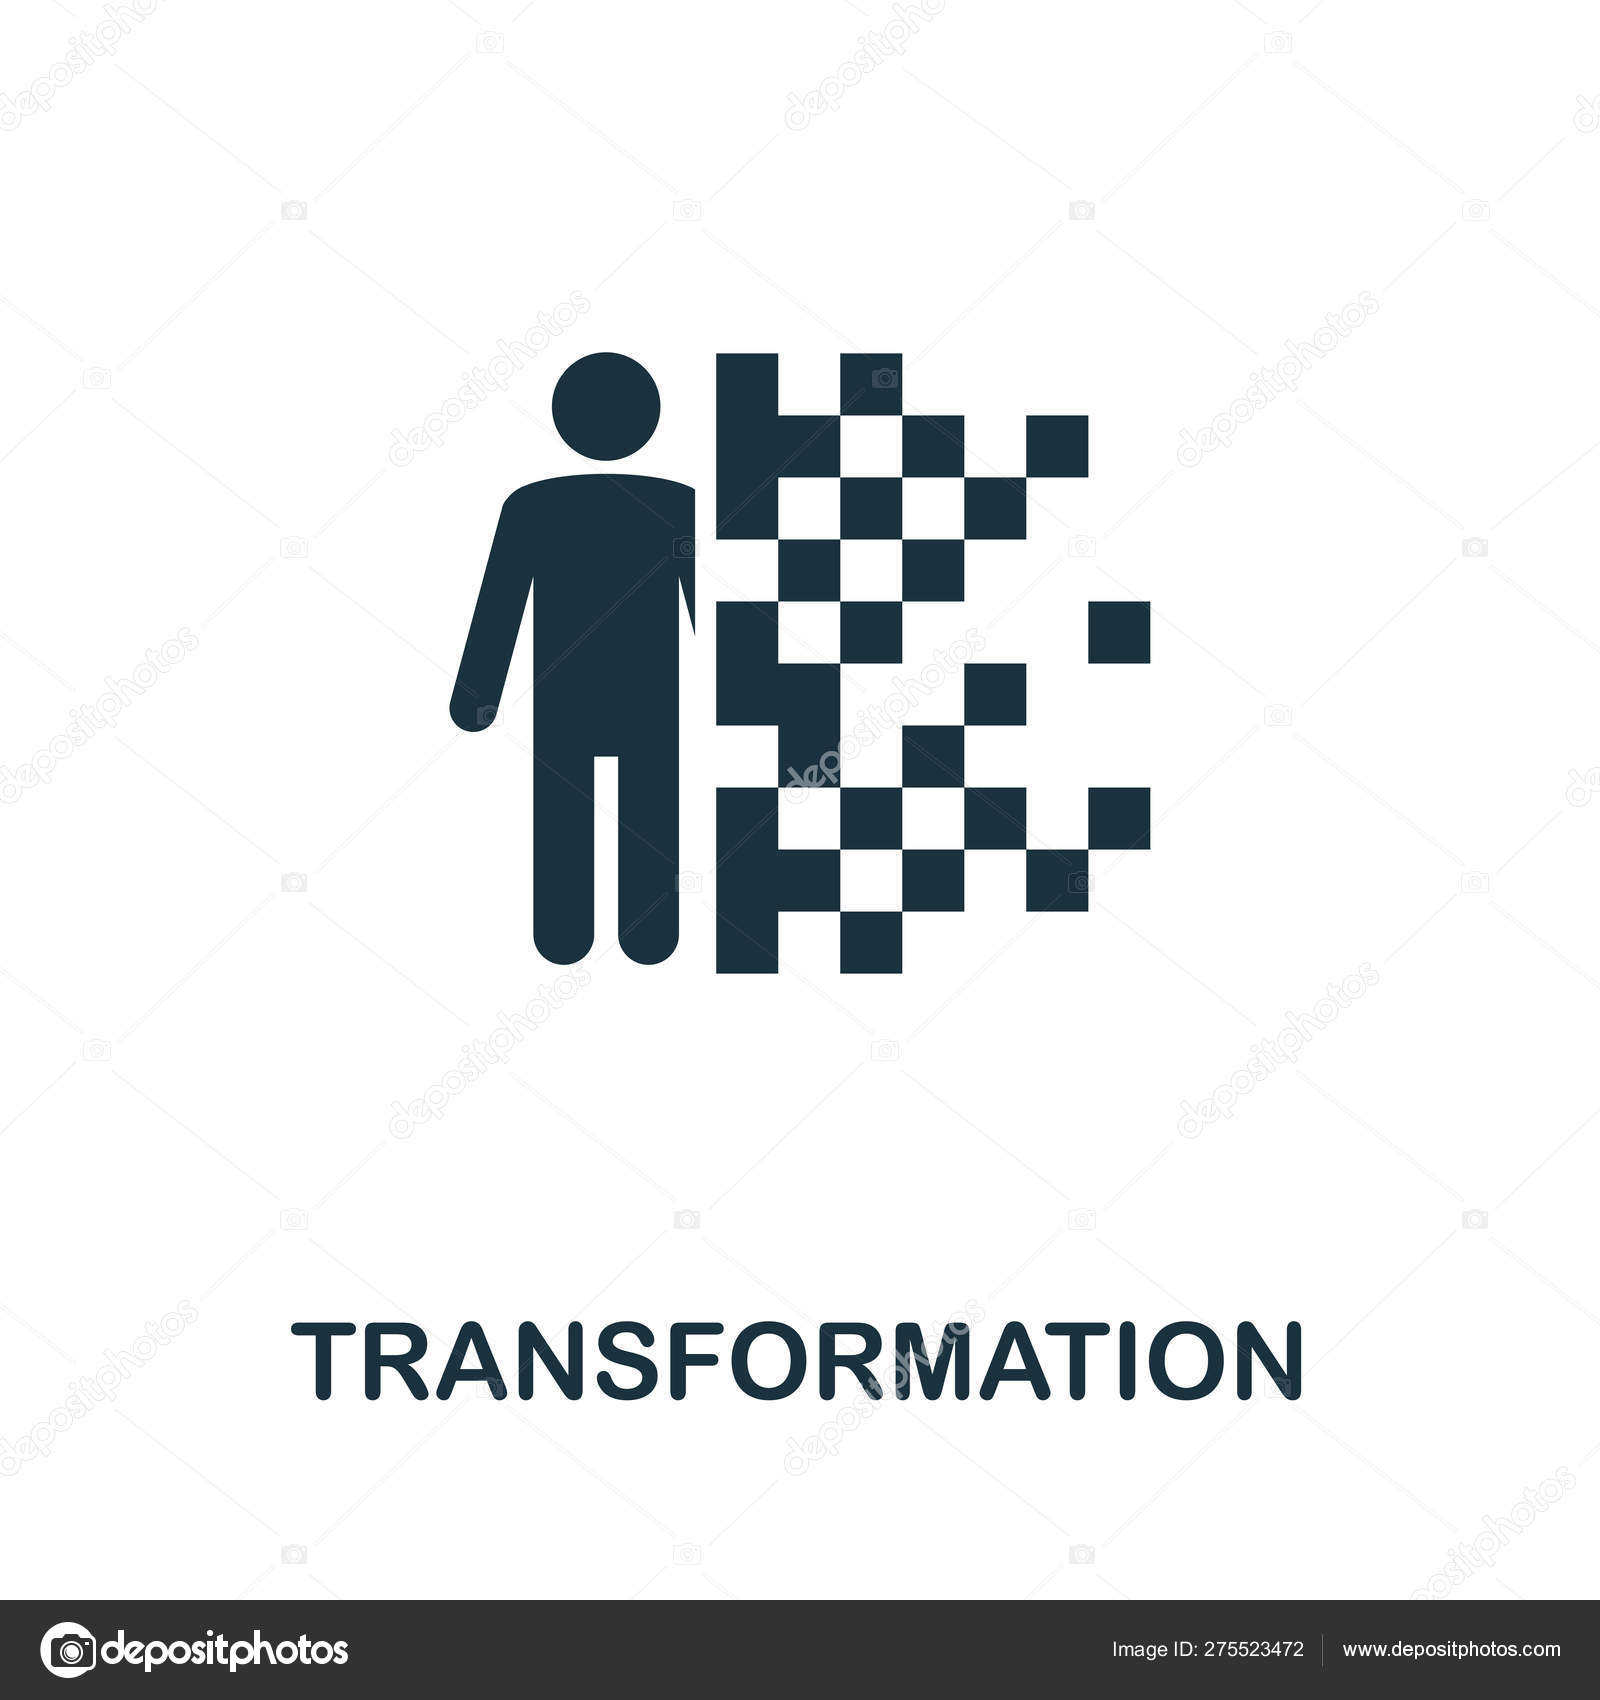 Transformation vector icon symbol  Creative sign from biotechnology